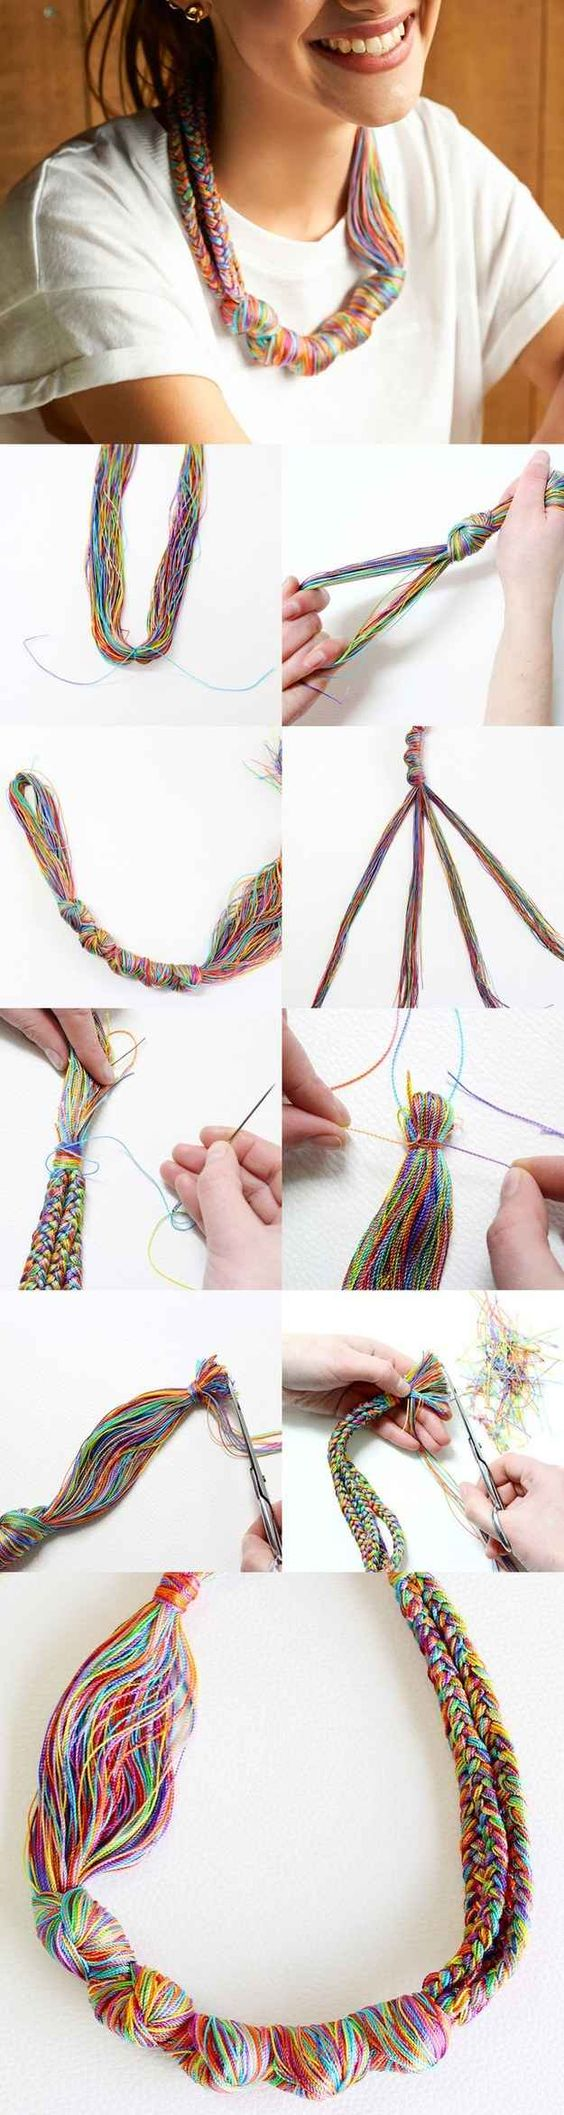 Embroidery Thread Necklace http://www.molliemakes.com/diy-fashion-2/diy-necklace-make-necklace-embroidery-threads/